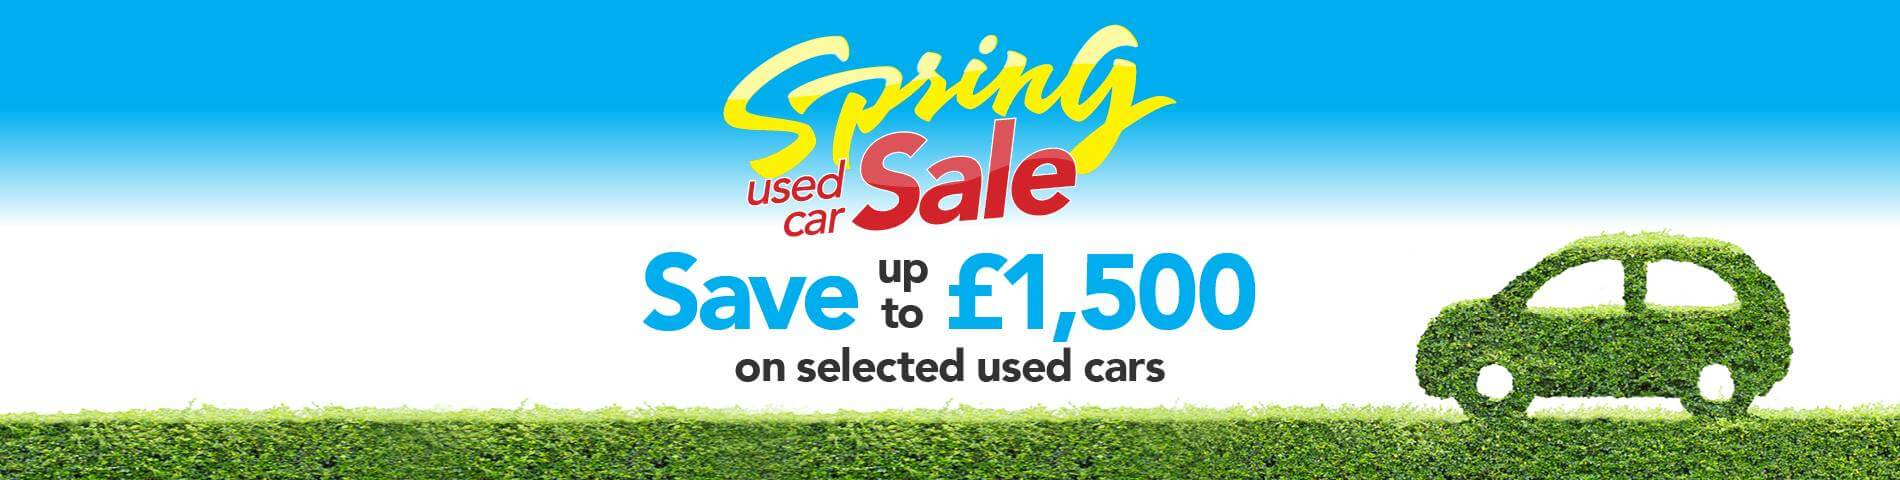 Used Car Spring Sale